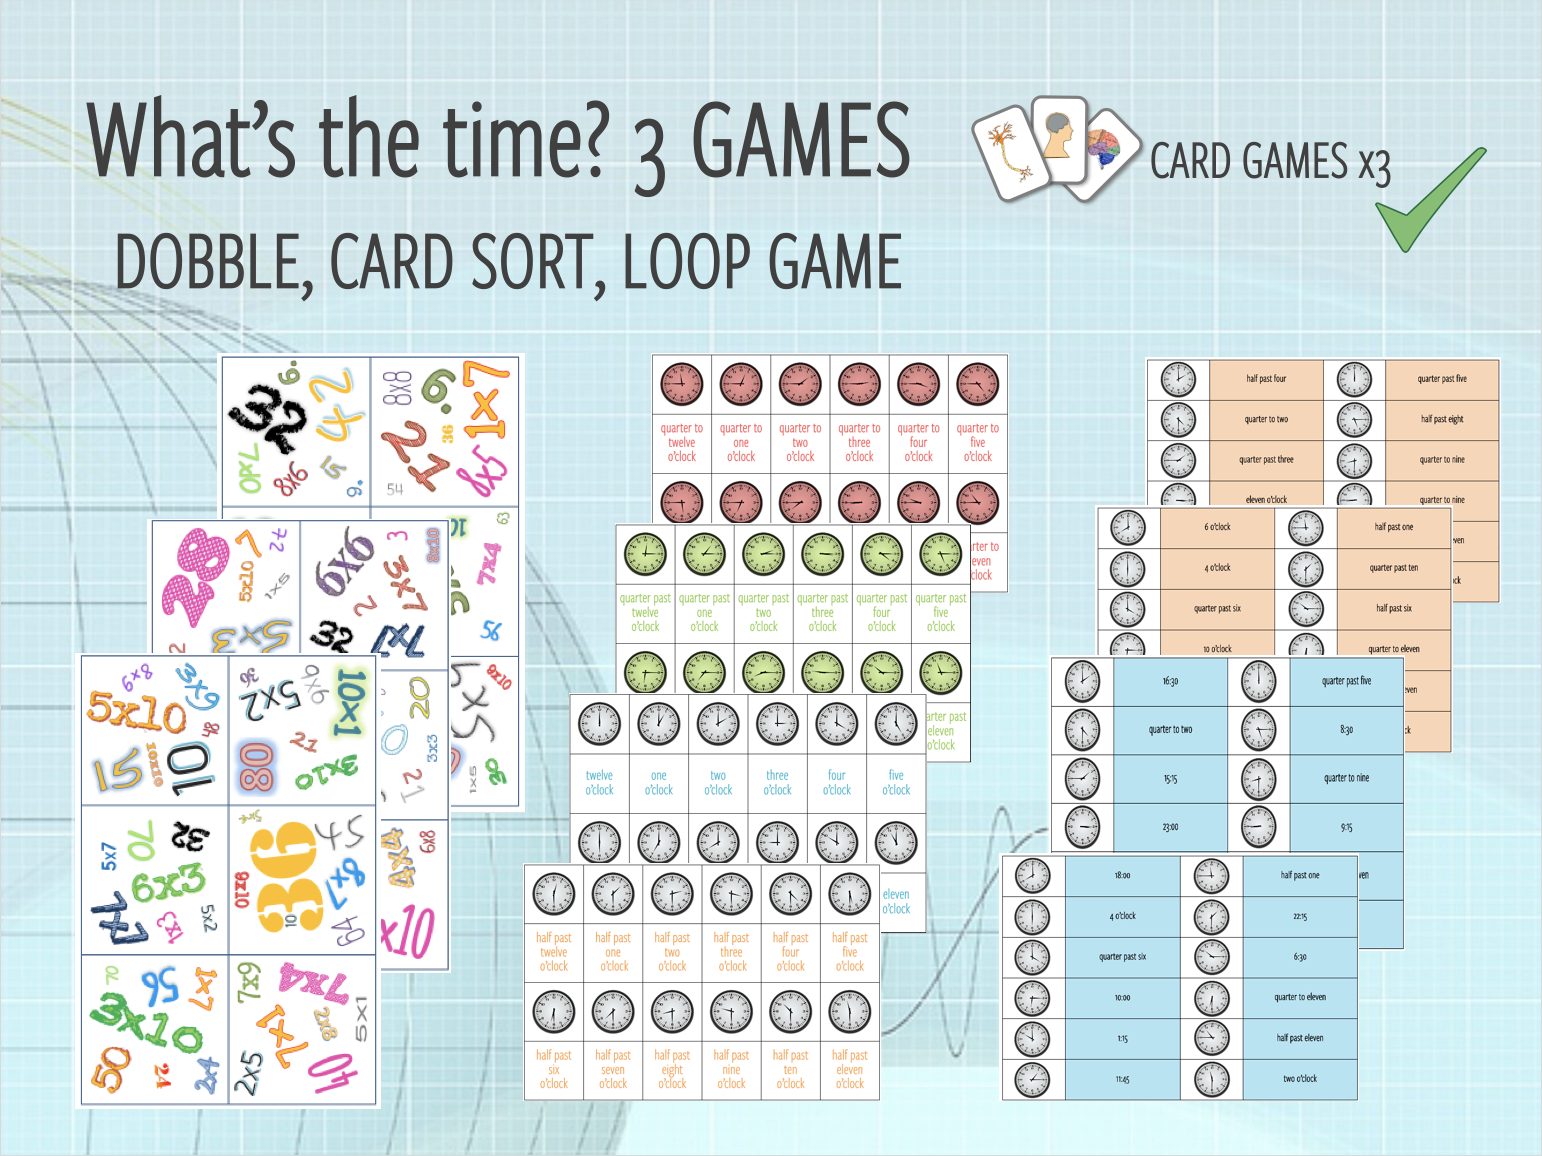 Telling the time - 3 GAMES (DOBBLE, CARD SORT, LOOP GAME)